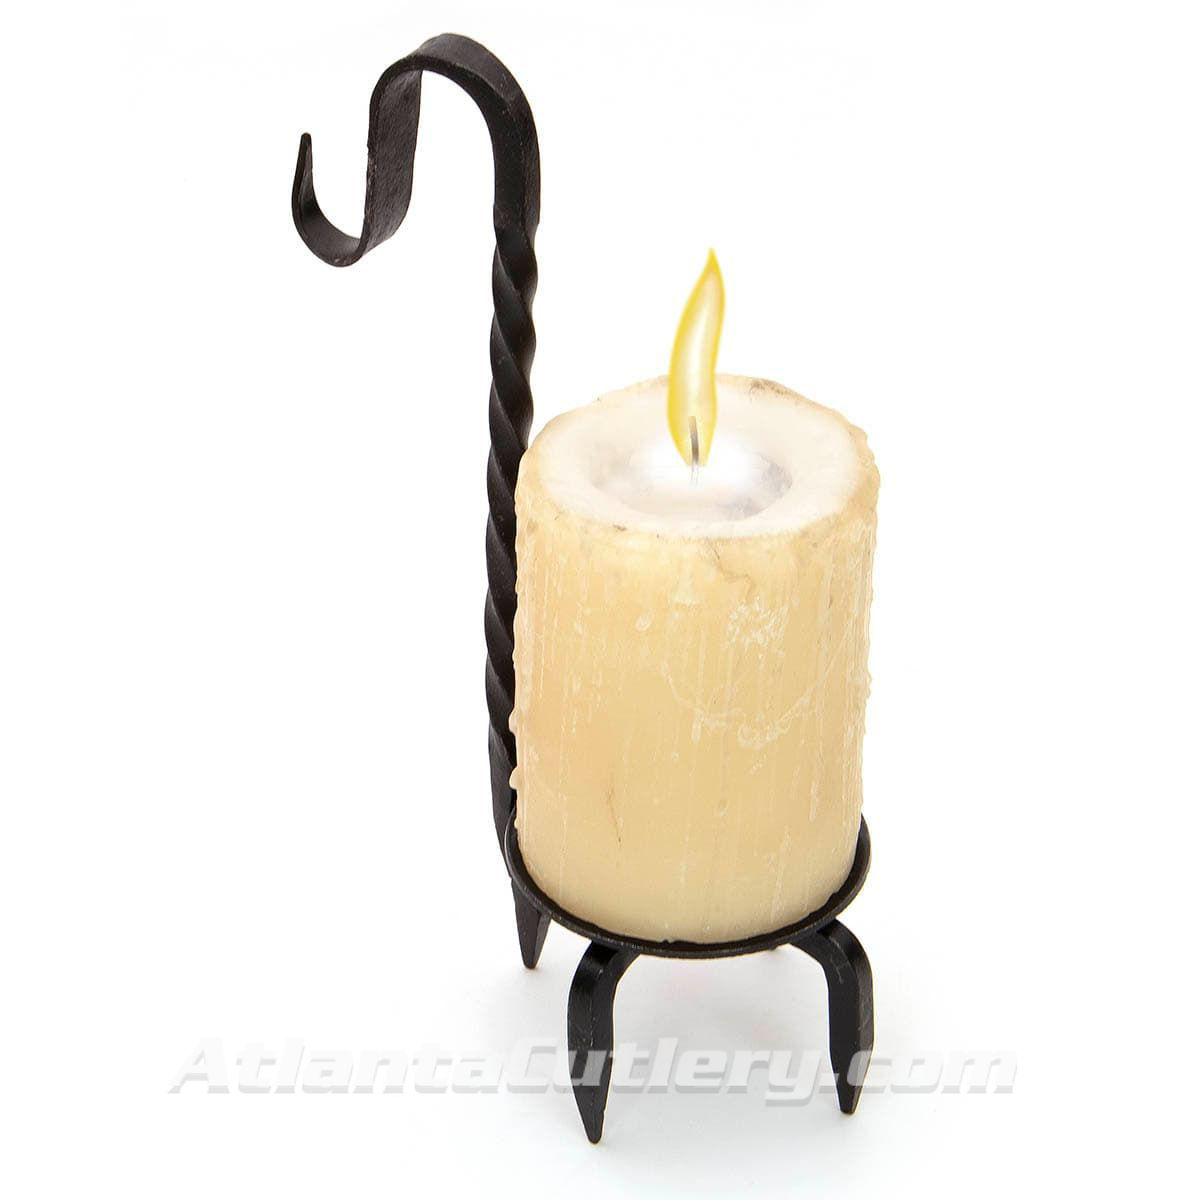 Forged Iron Candle Holder shown with Candle